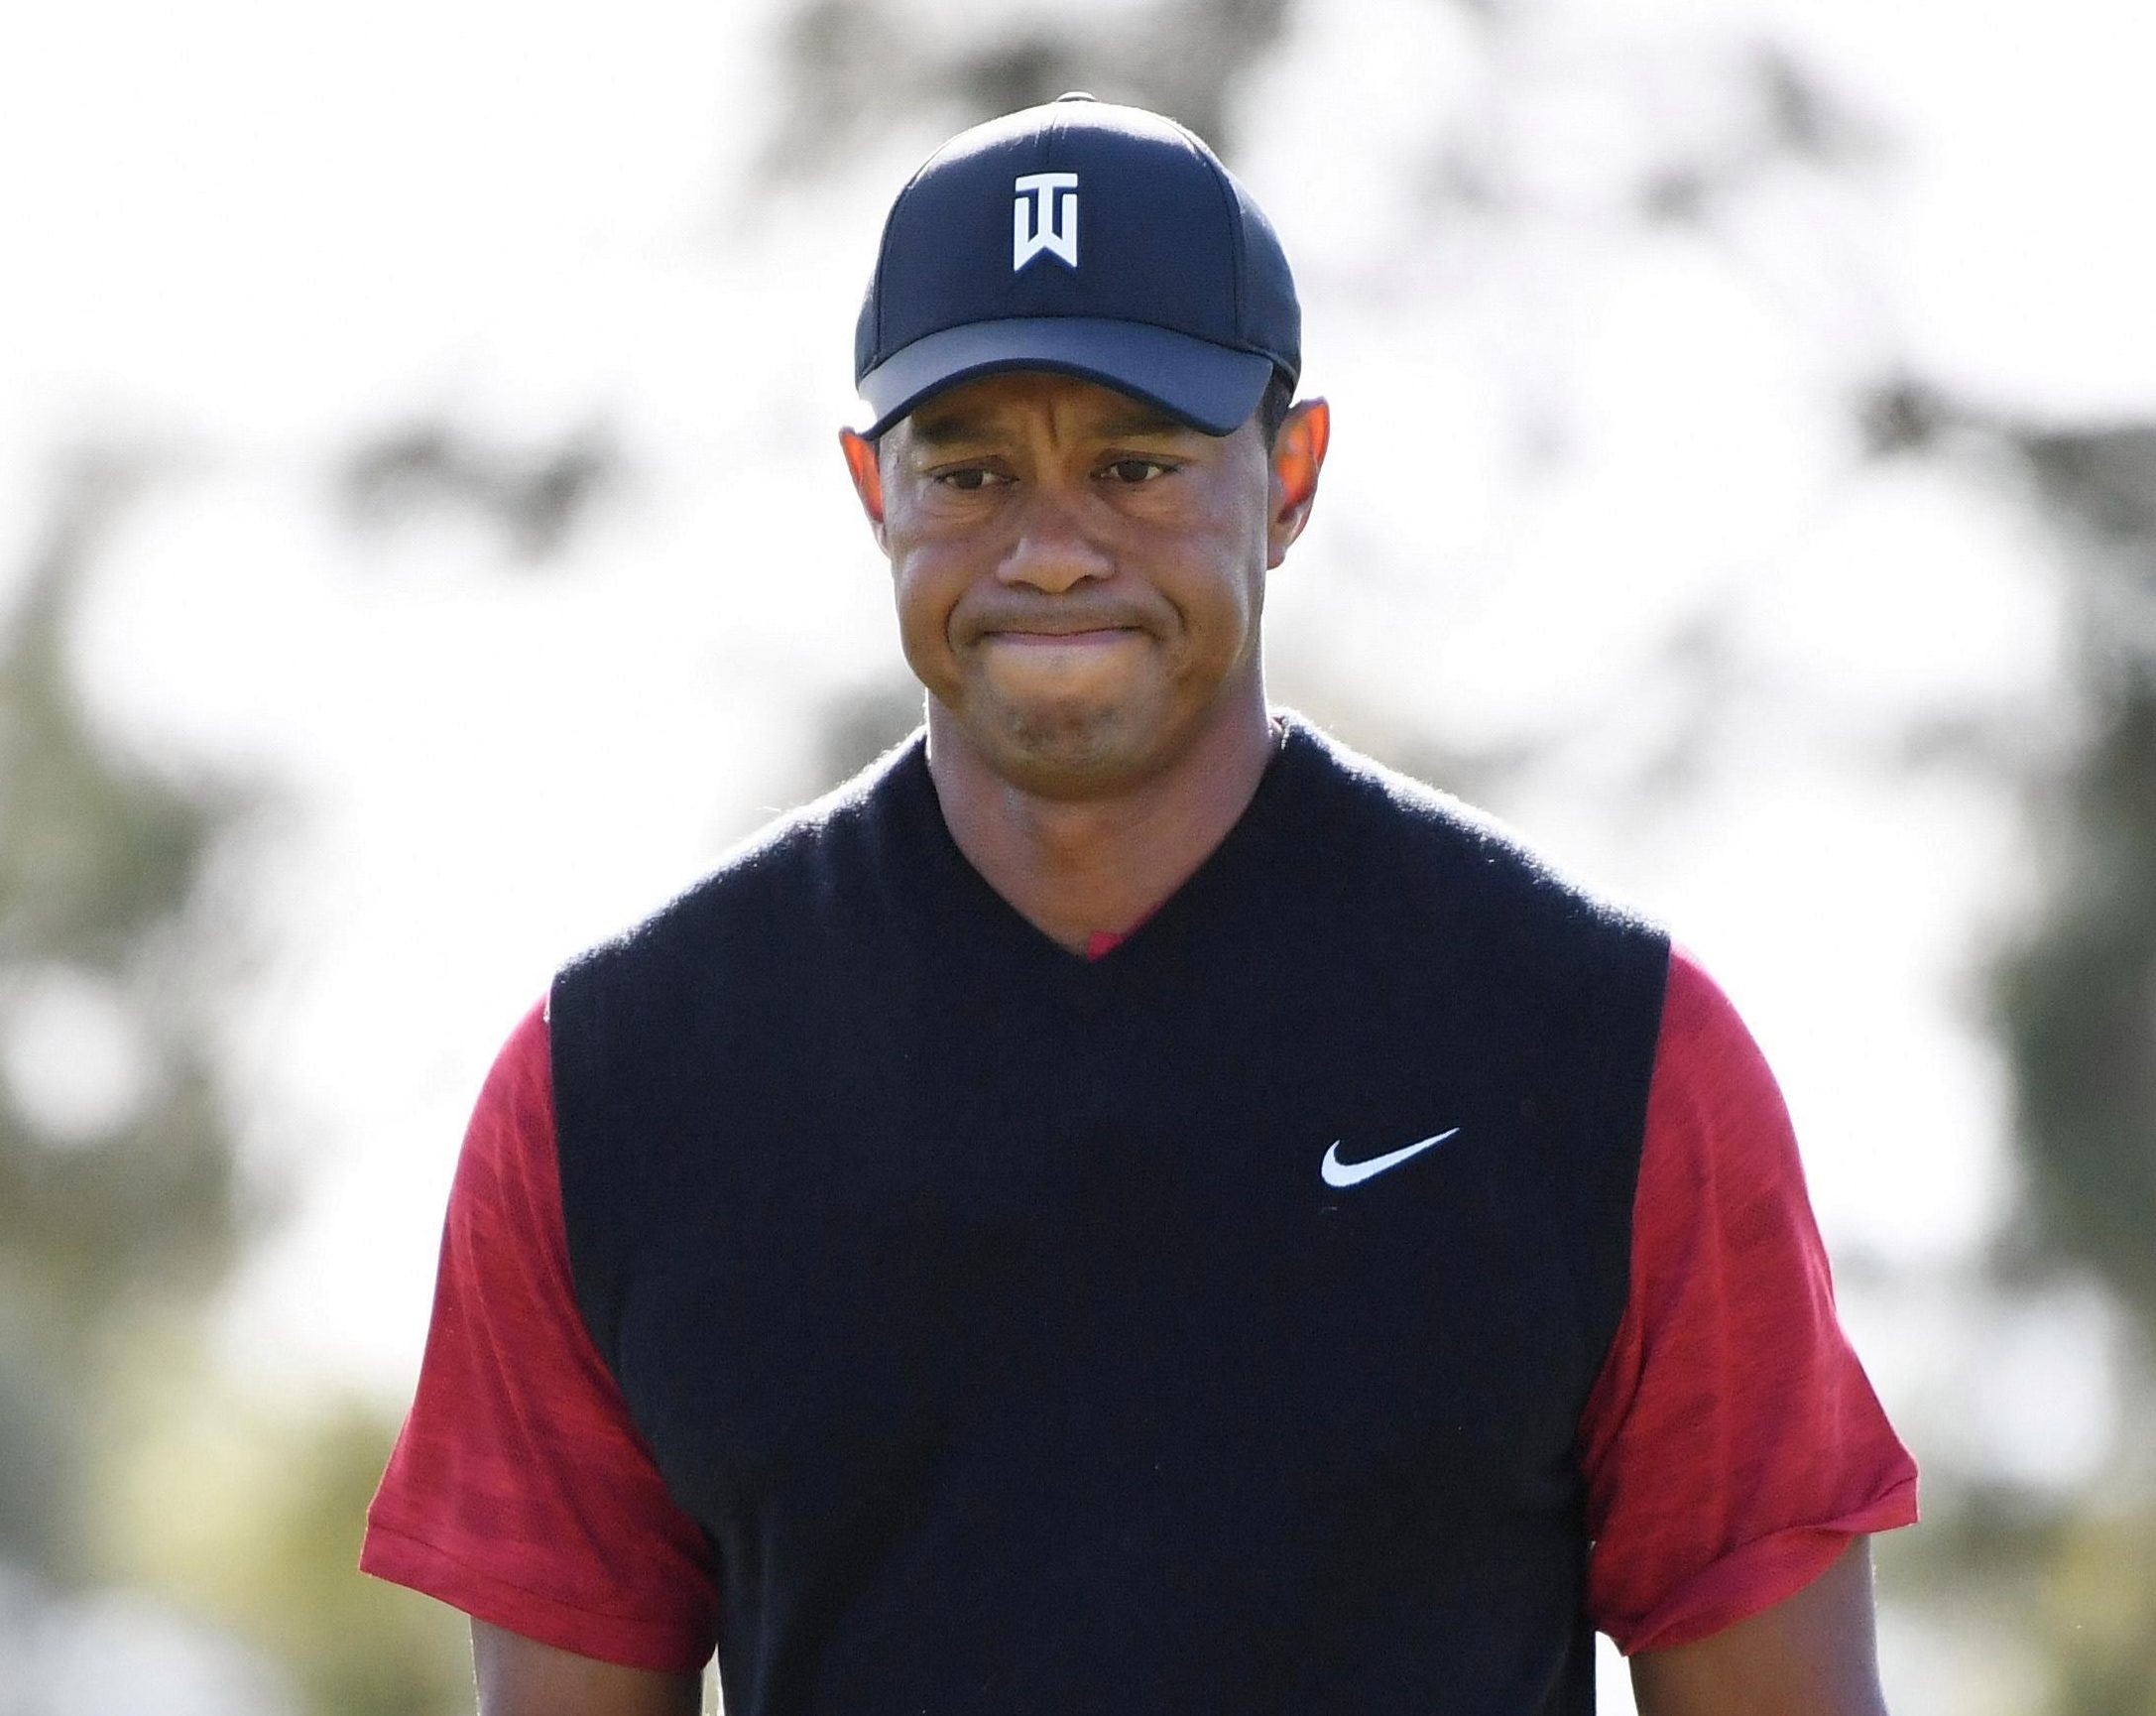 It's just a shame that Tiger Woods who elevated golf to new levels, winning 14 Majors, has now lowered himself to this one